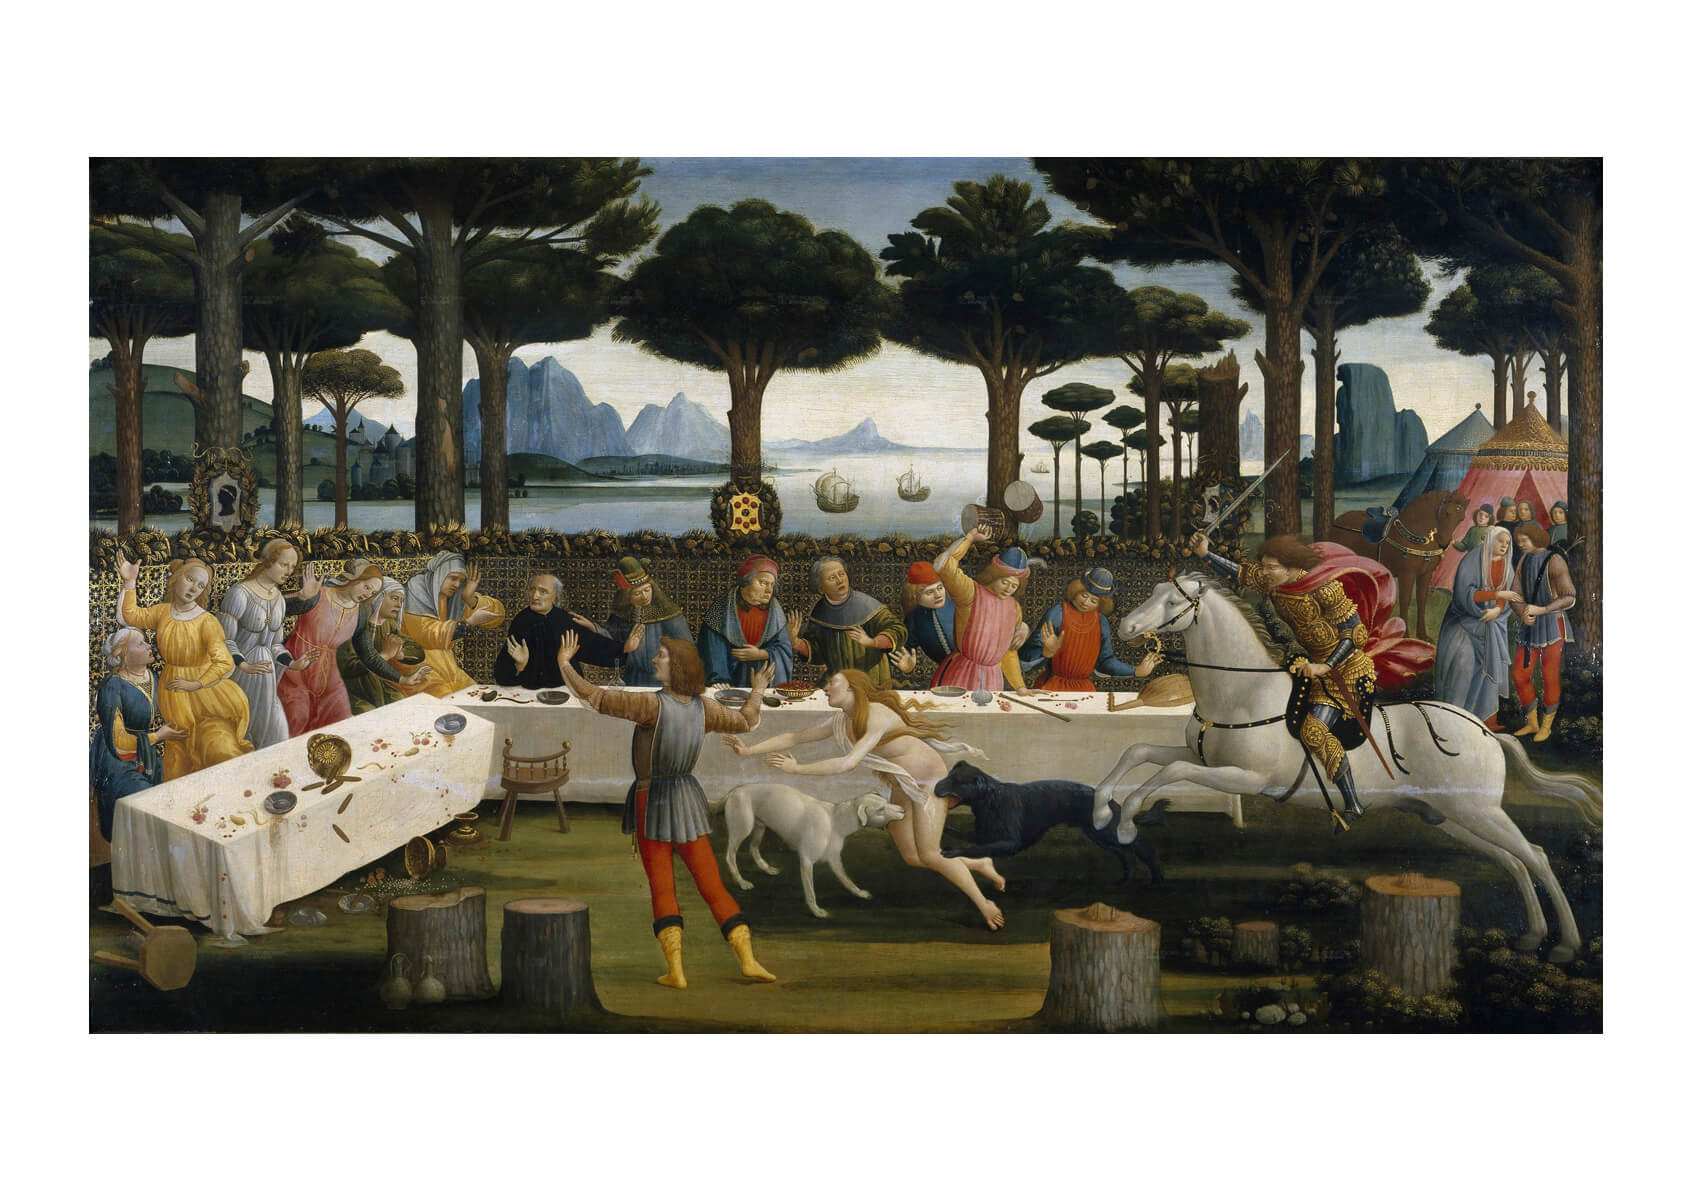 Sandro Botticelli - The Banquet